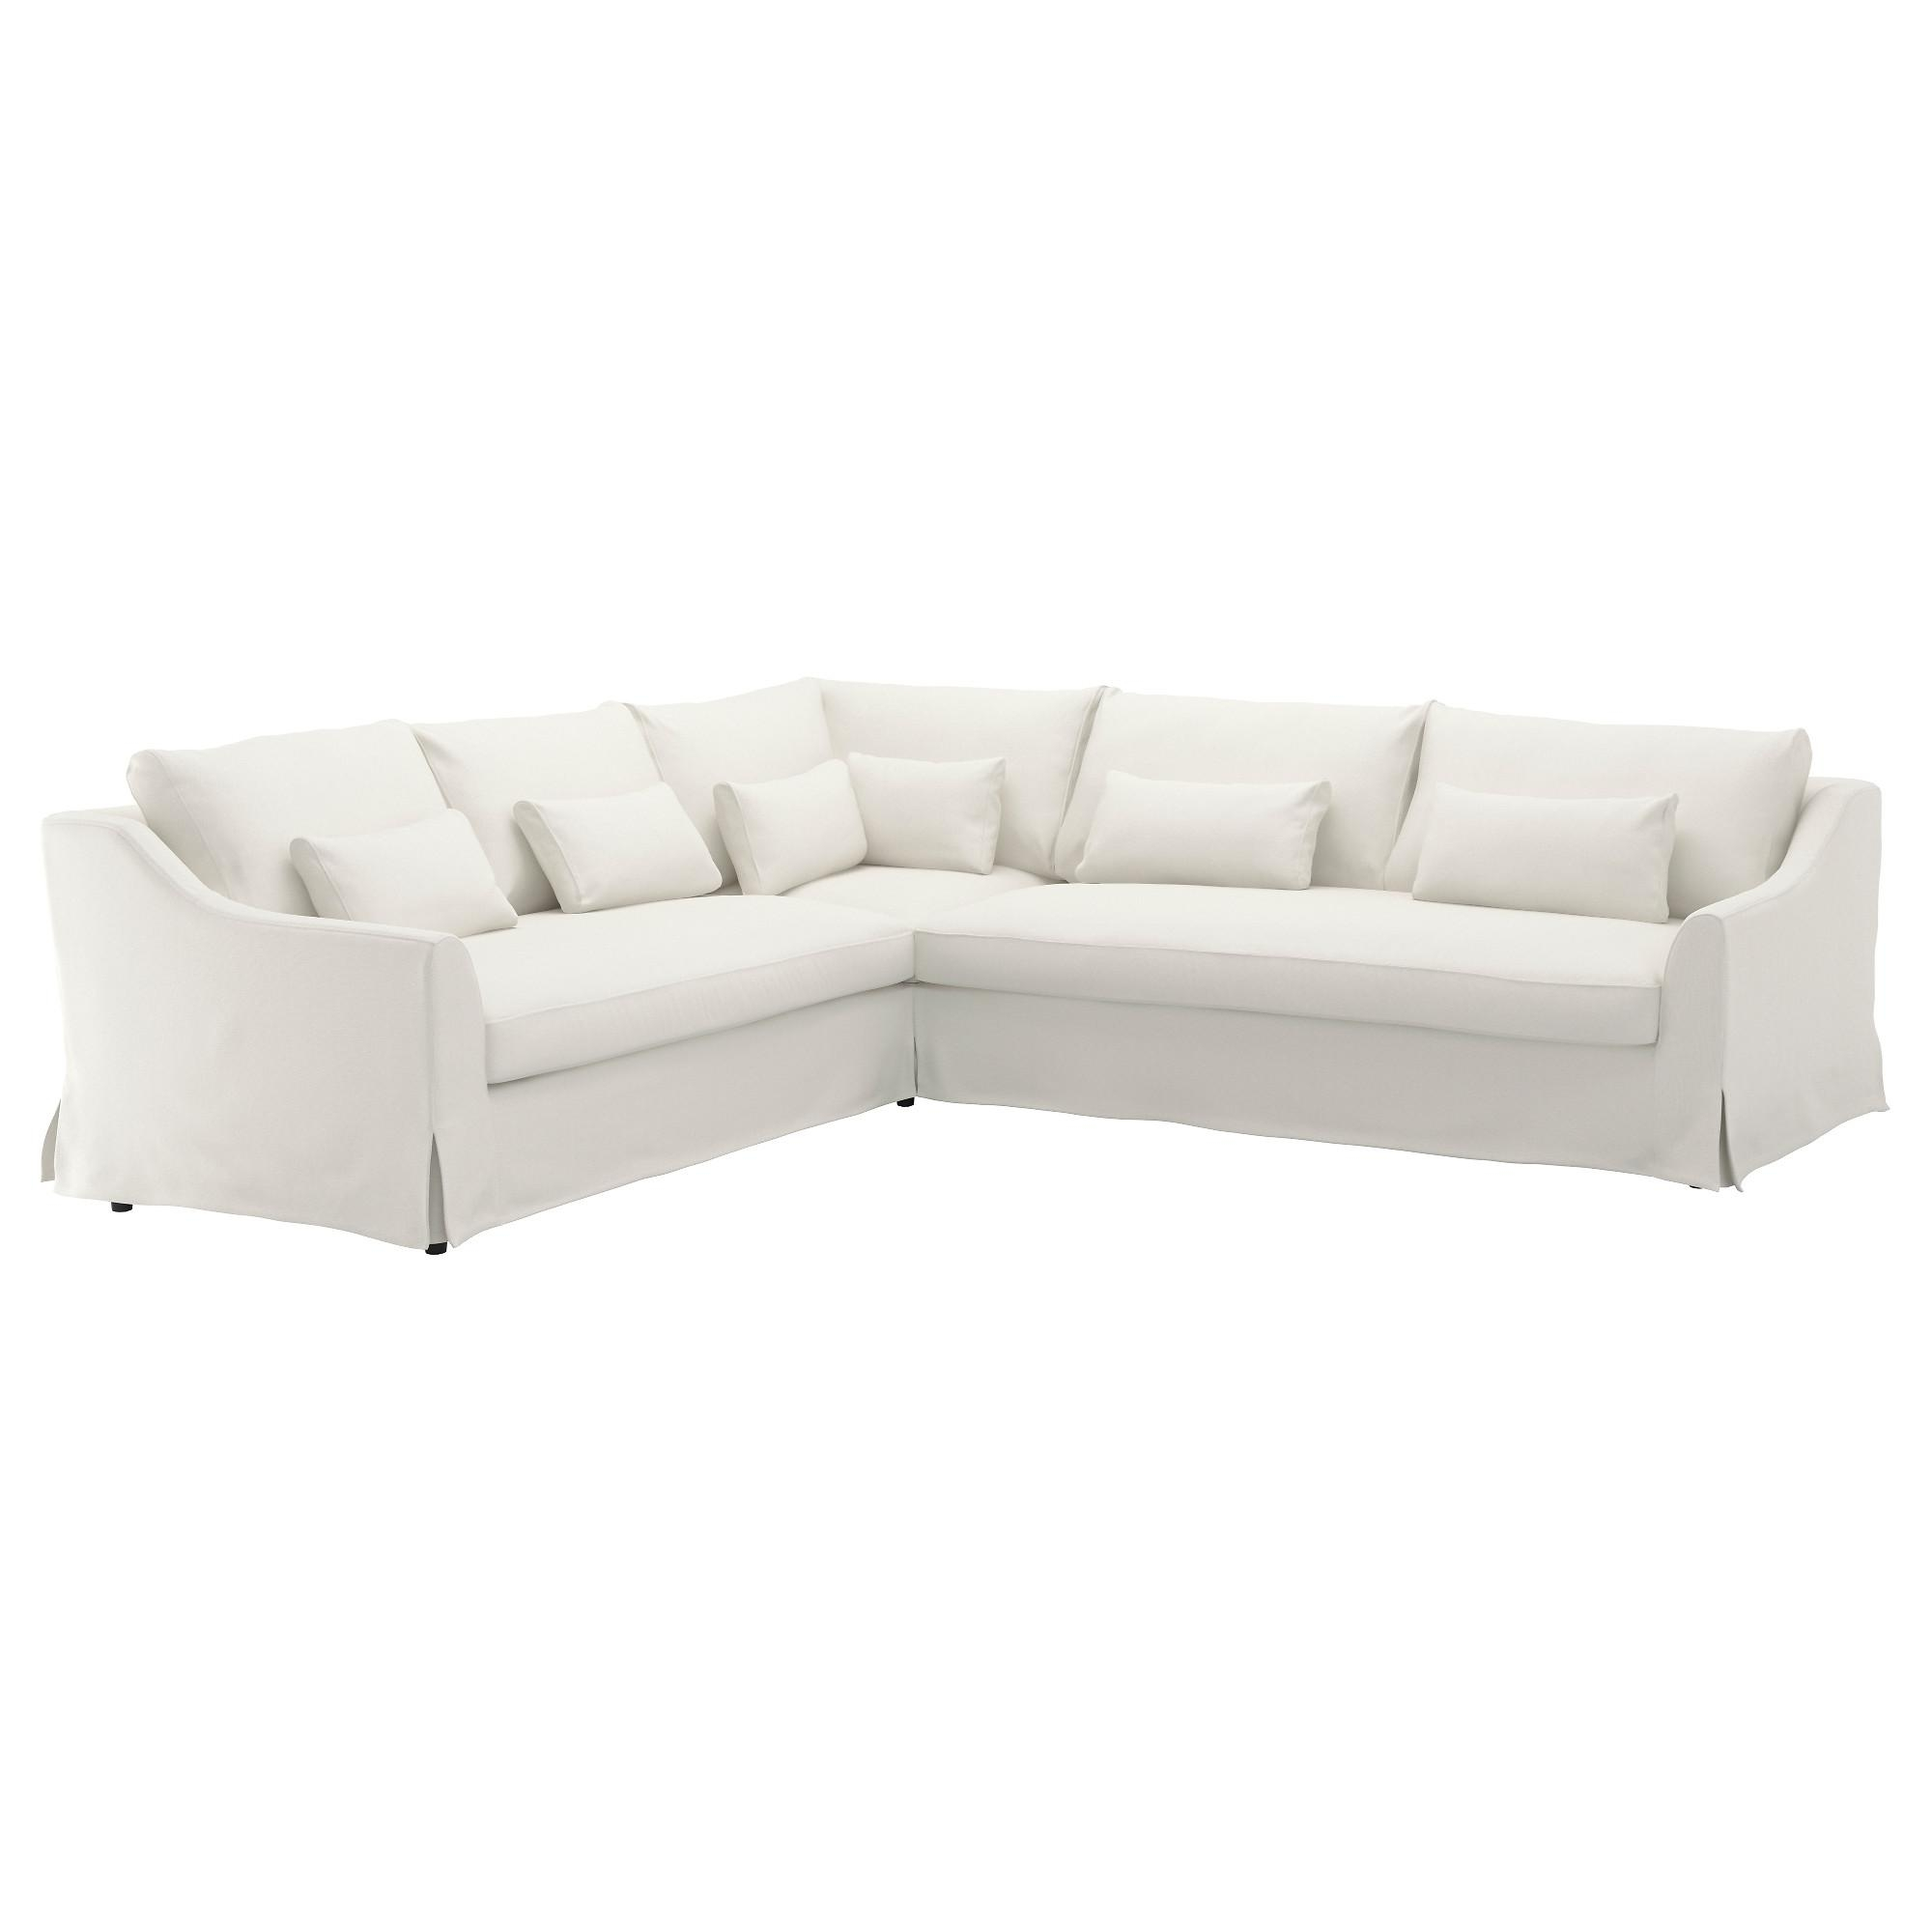 Sofas : Marvelous White Chaise Sofa White Fabric Sectional Sofa Intended For White Fabric Sofas (Image 17 of 20)